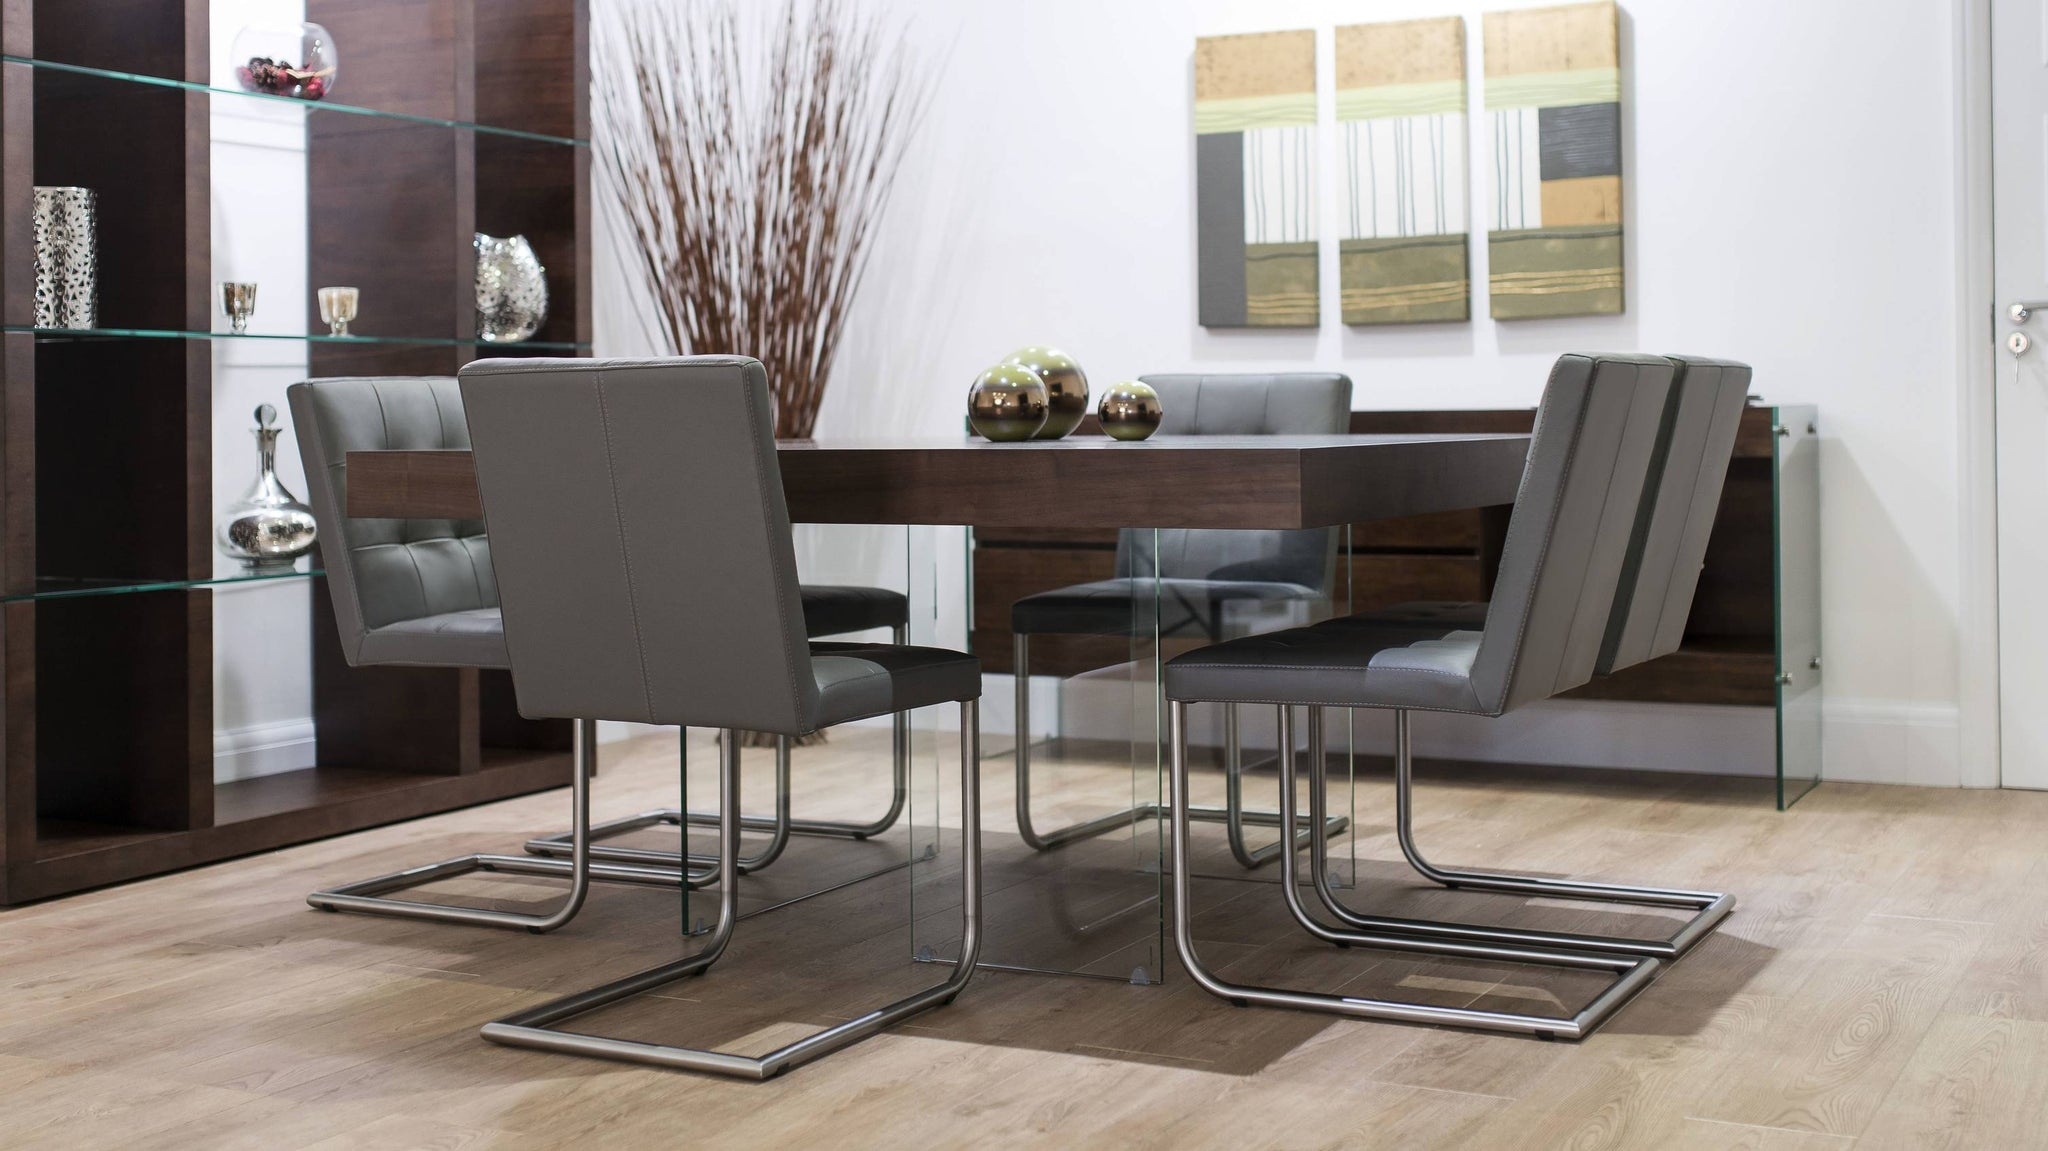 Stylish Dining Chairs and Dark Wood Square Dining Table